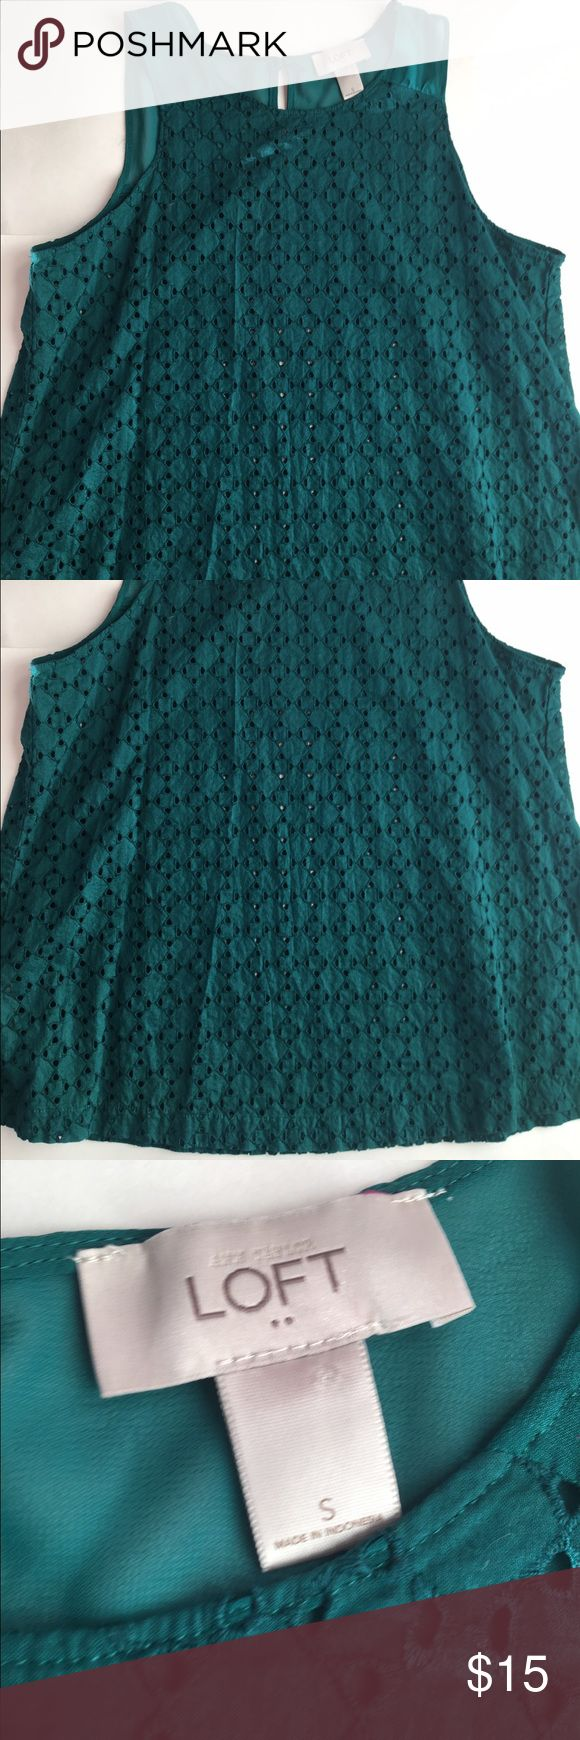 Anne Taylor loft green eyelet tank Anne Taylor loft sleeveless top with Button and sheer in back LOFT Tops Tank Tops